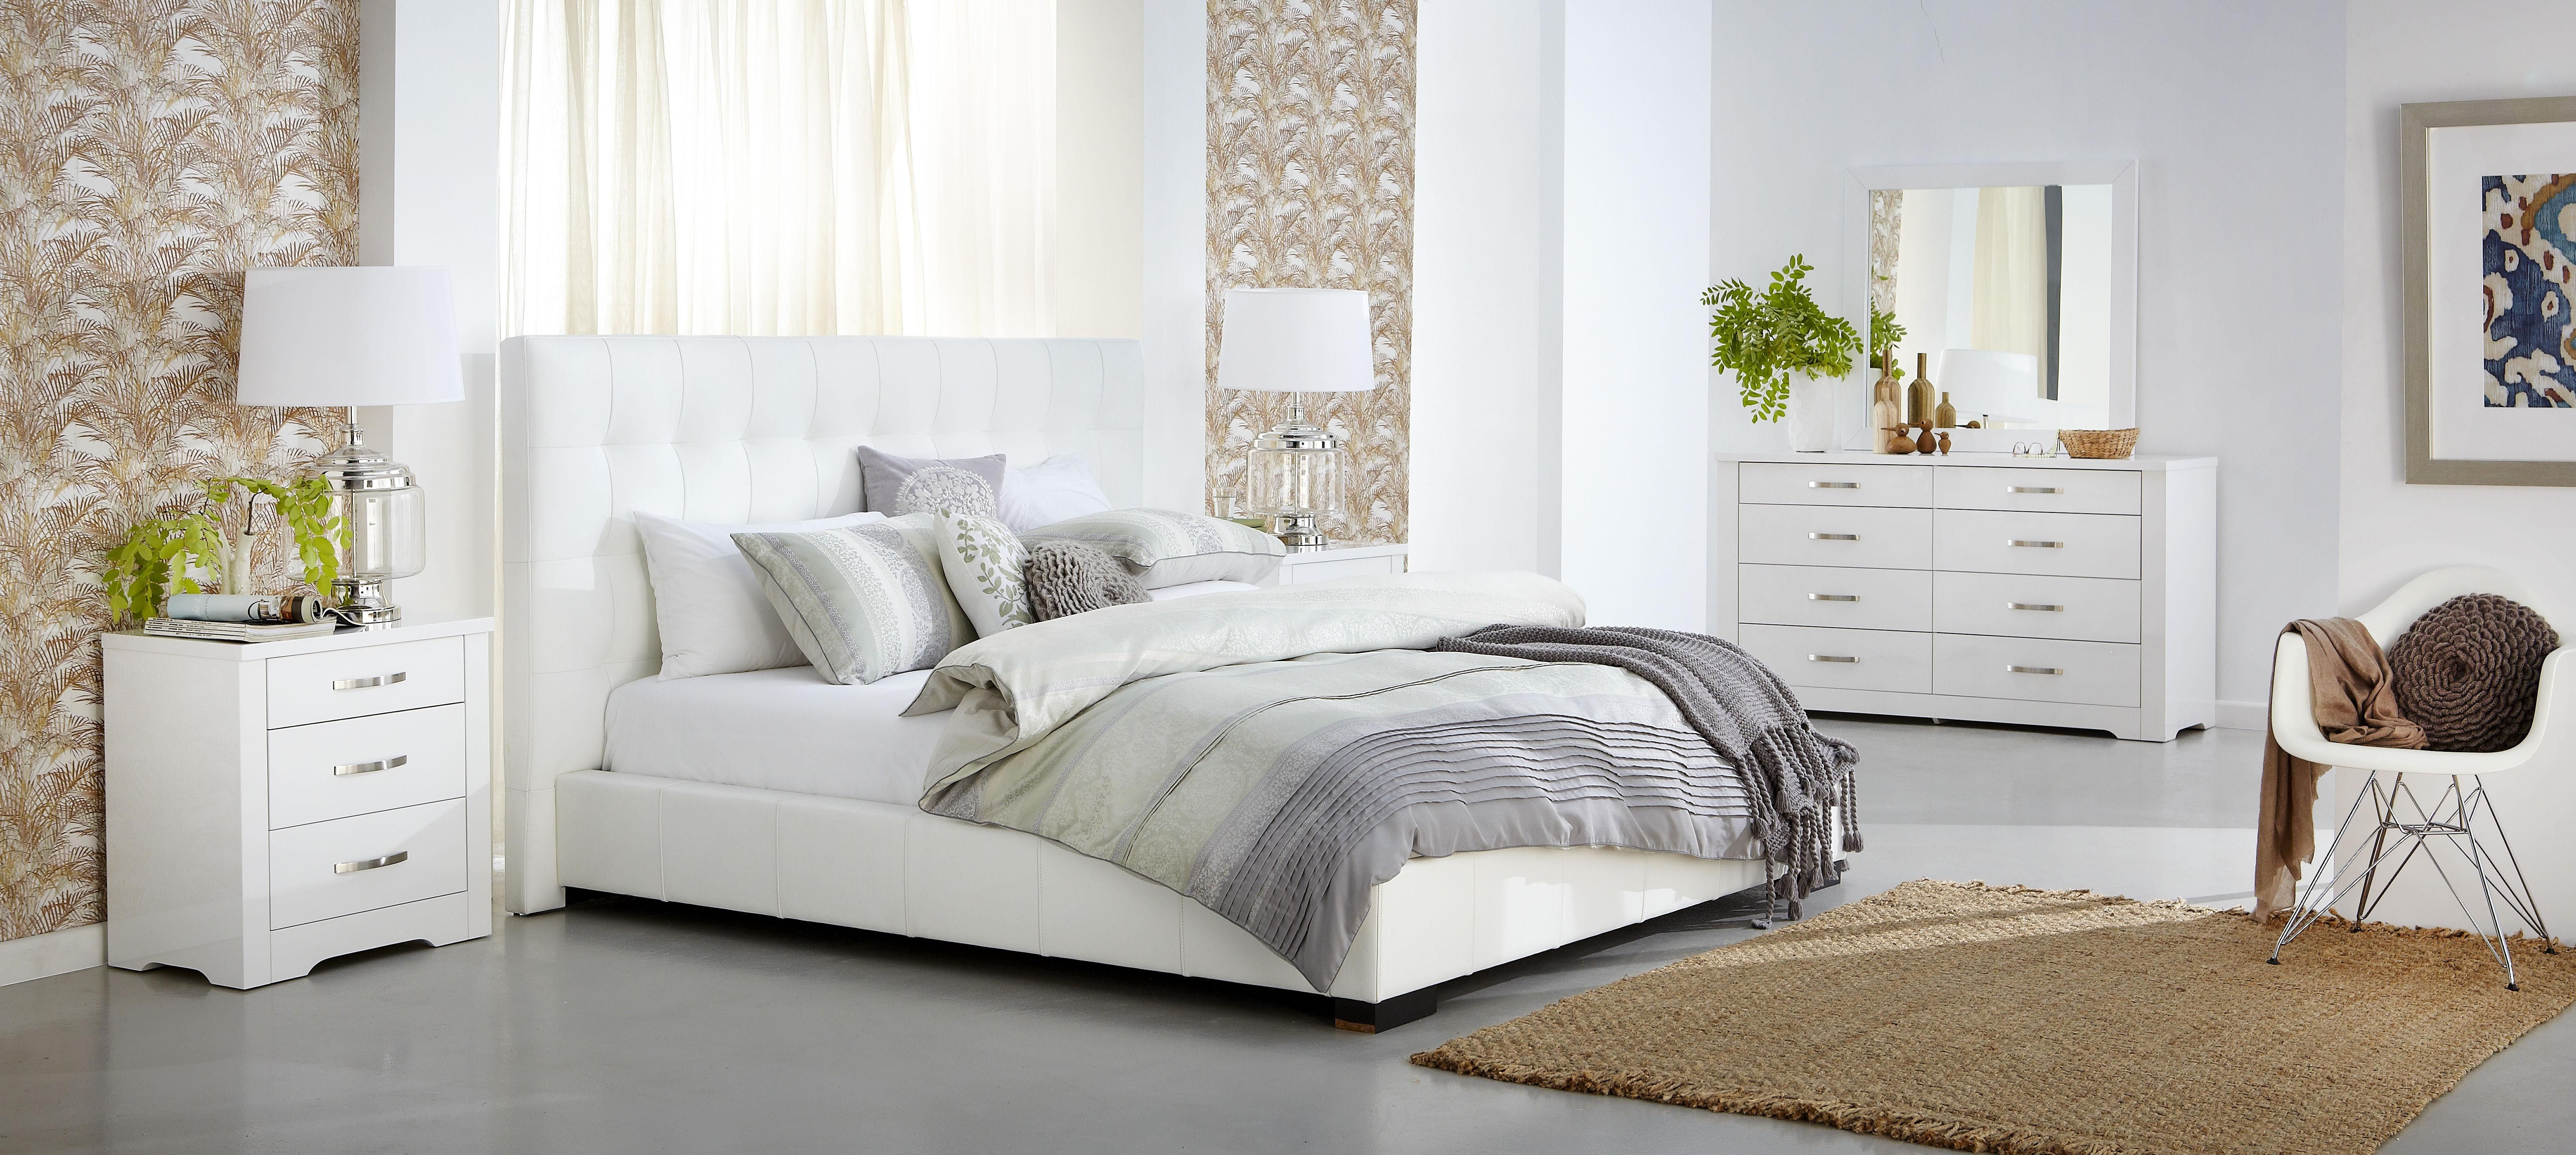 Alexa Bedroom Furniture The Look Is